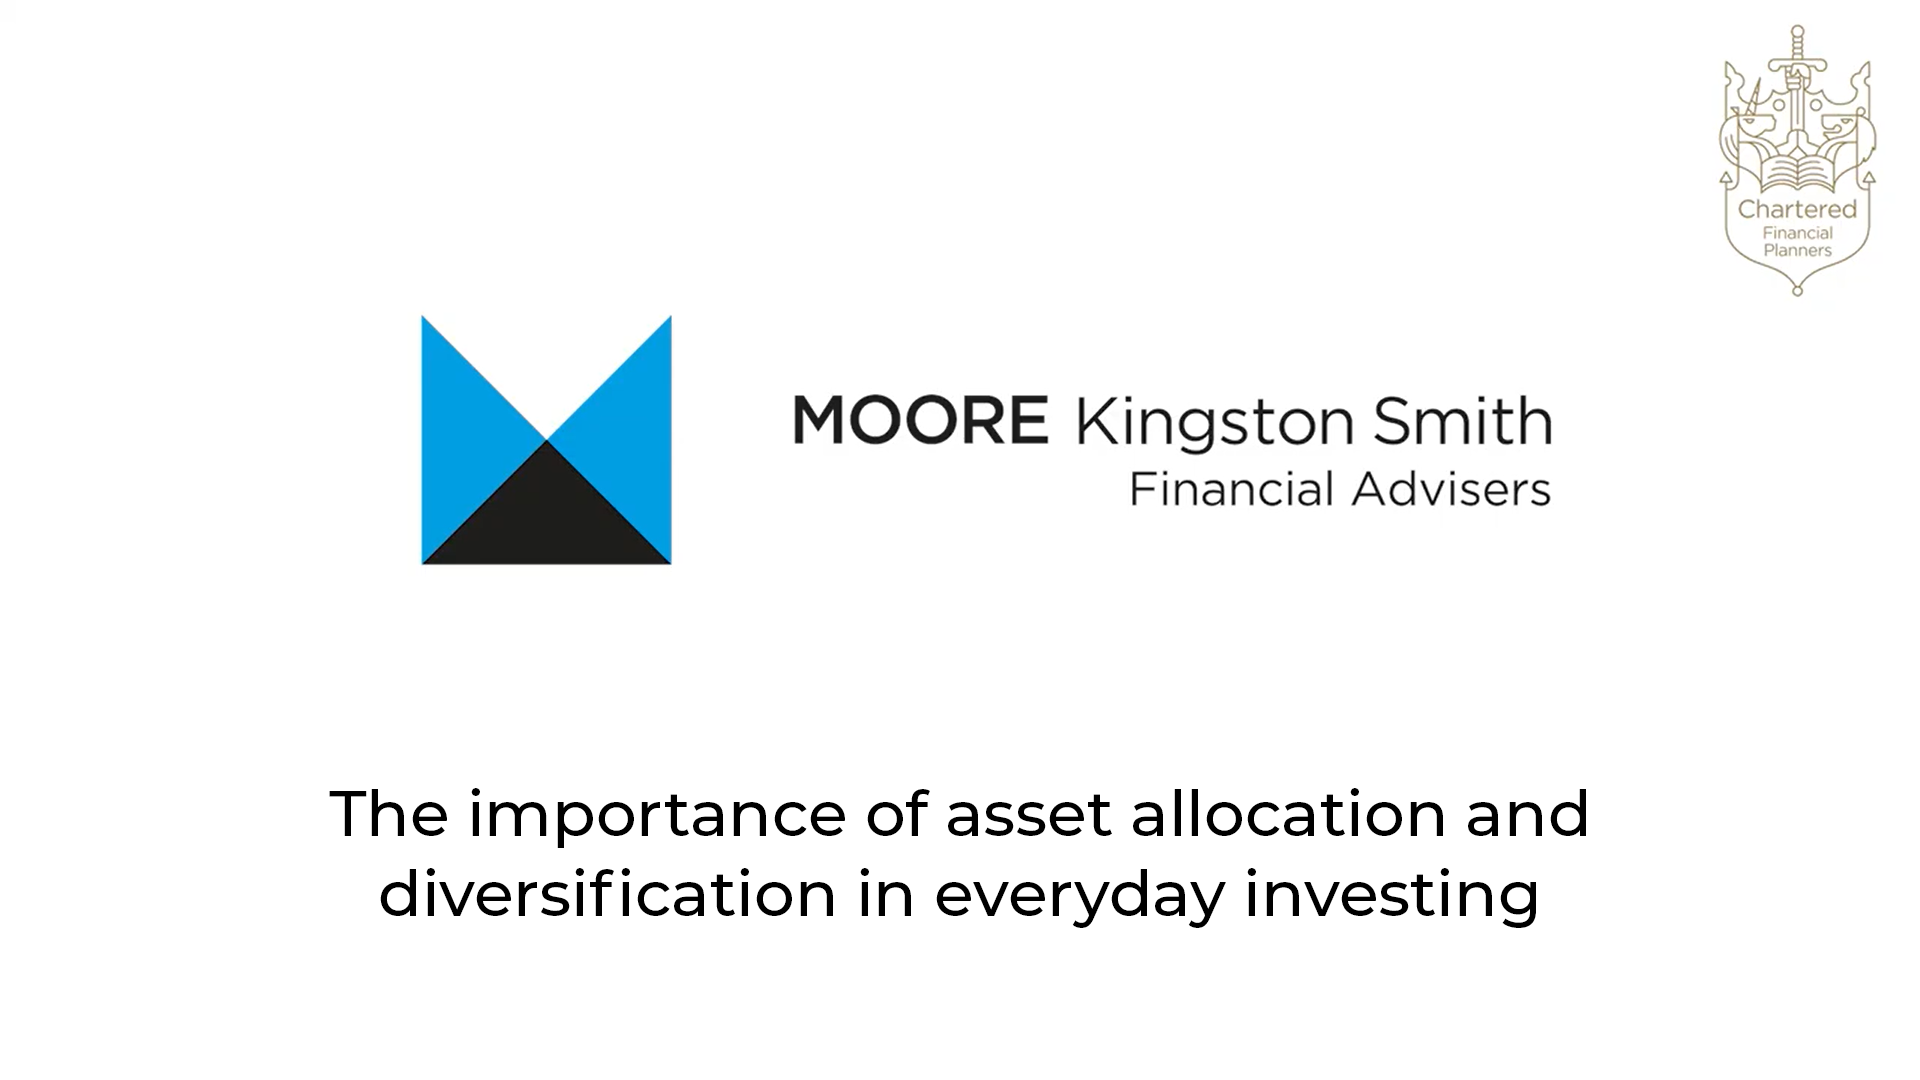 The importance of asset allocation and diversification in everyday investing